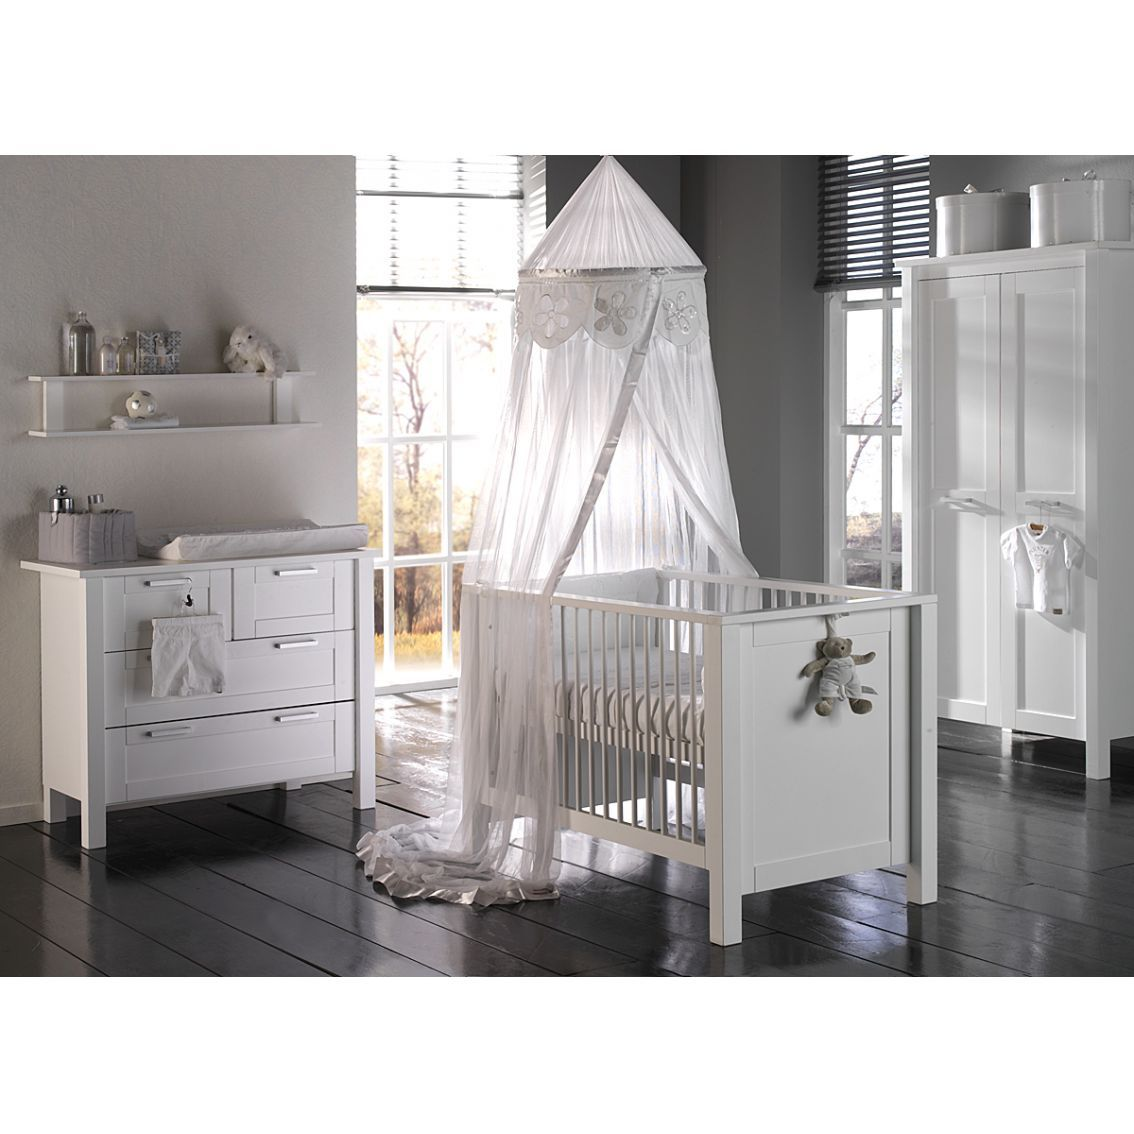 Adorable Nursery Furniture In White Accents For Unisex Babies: Dashing Modern Style Nursery Furniture White Baby Bedroom Interior